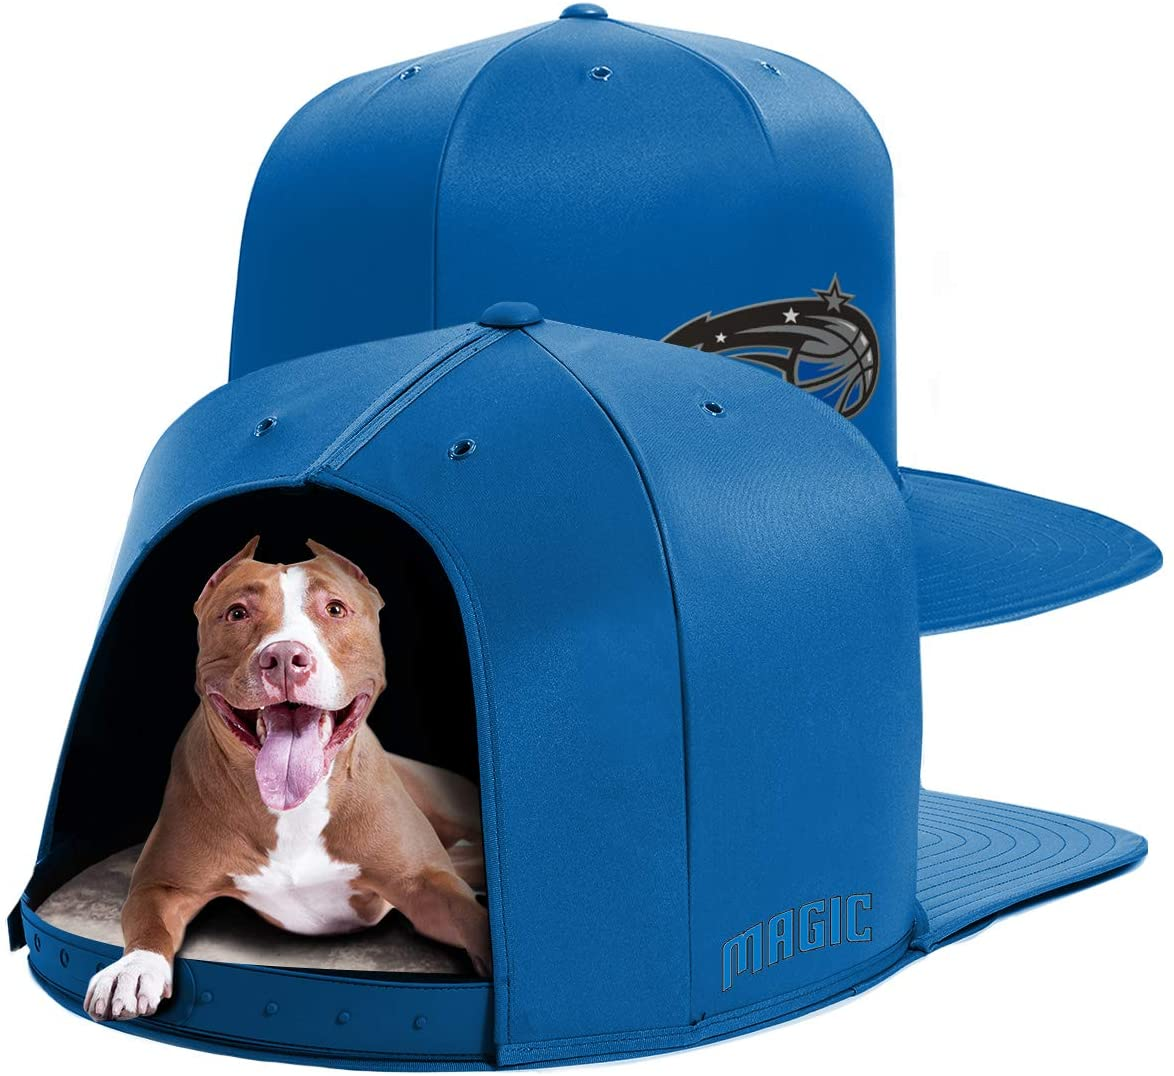 NAP CAP NBA Orlando Magic Team Indoor Pet Bed, Royal Blue (Available in 3 Sizes)